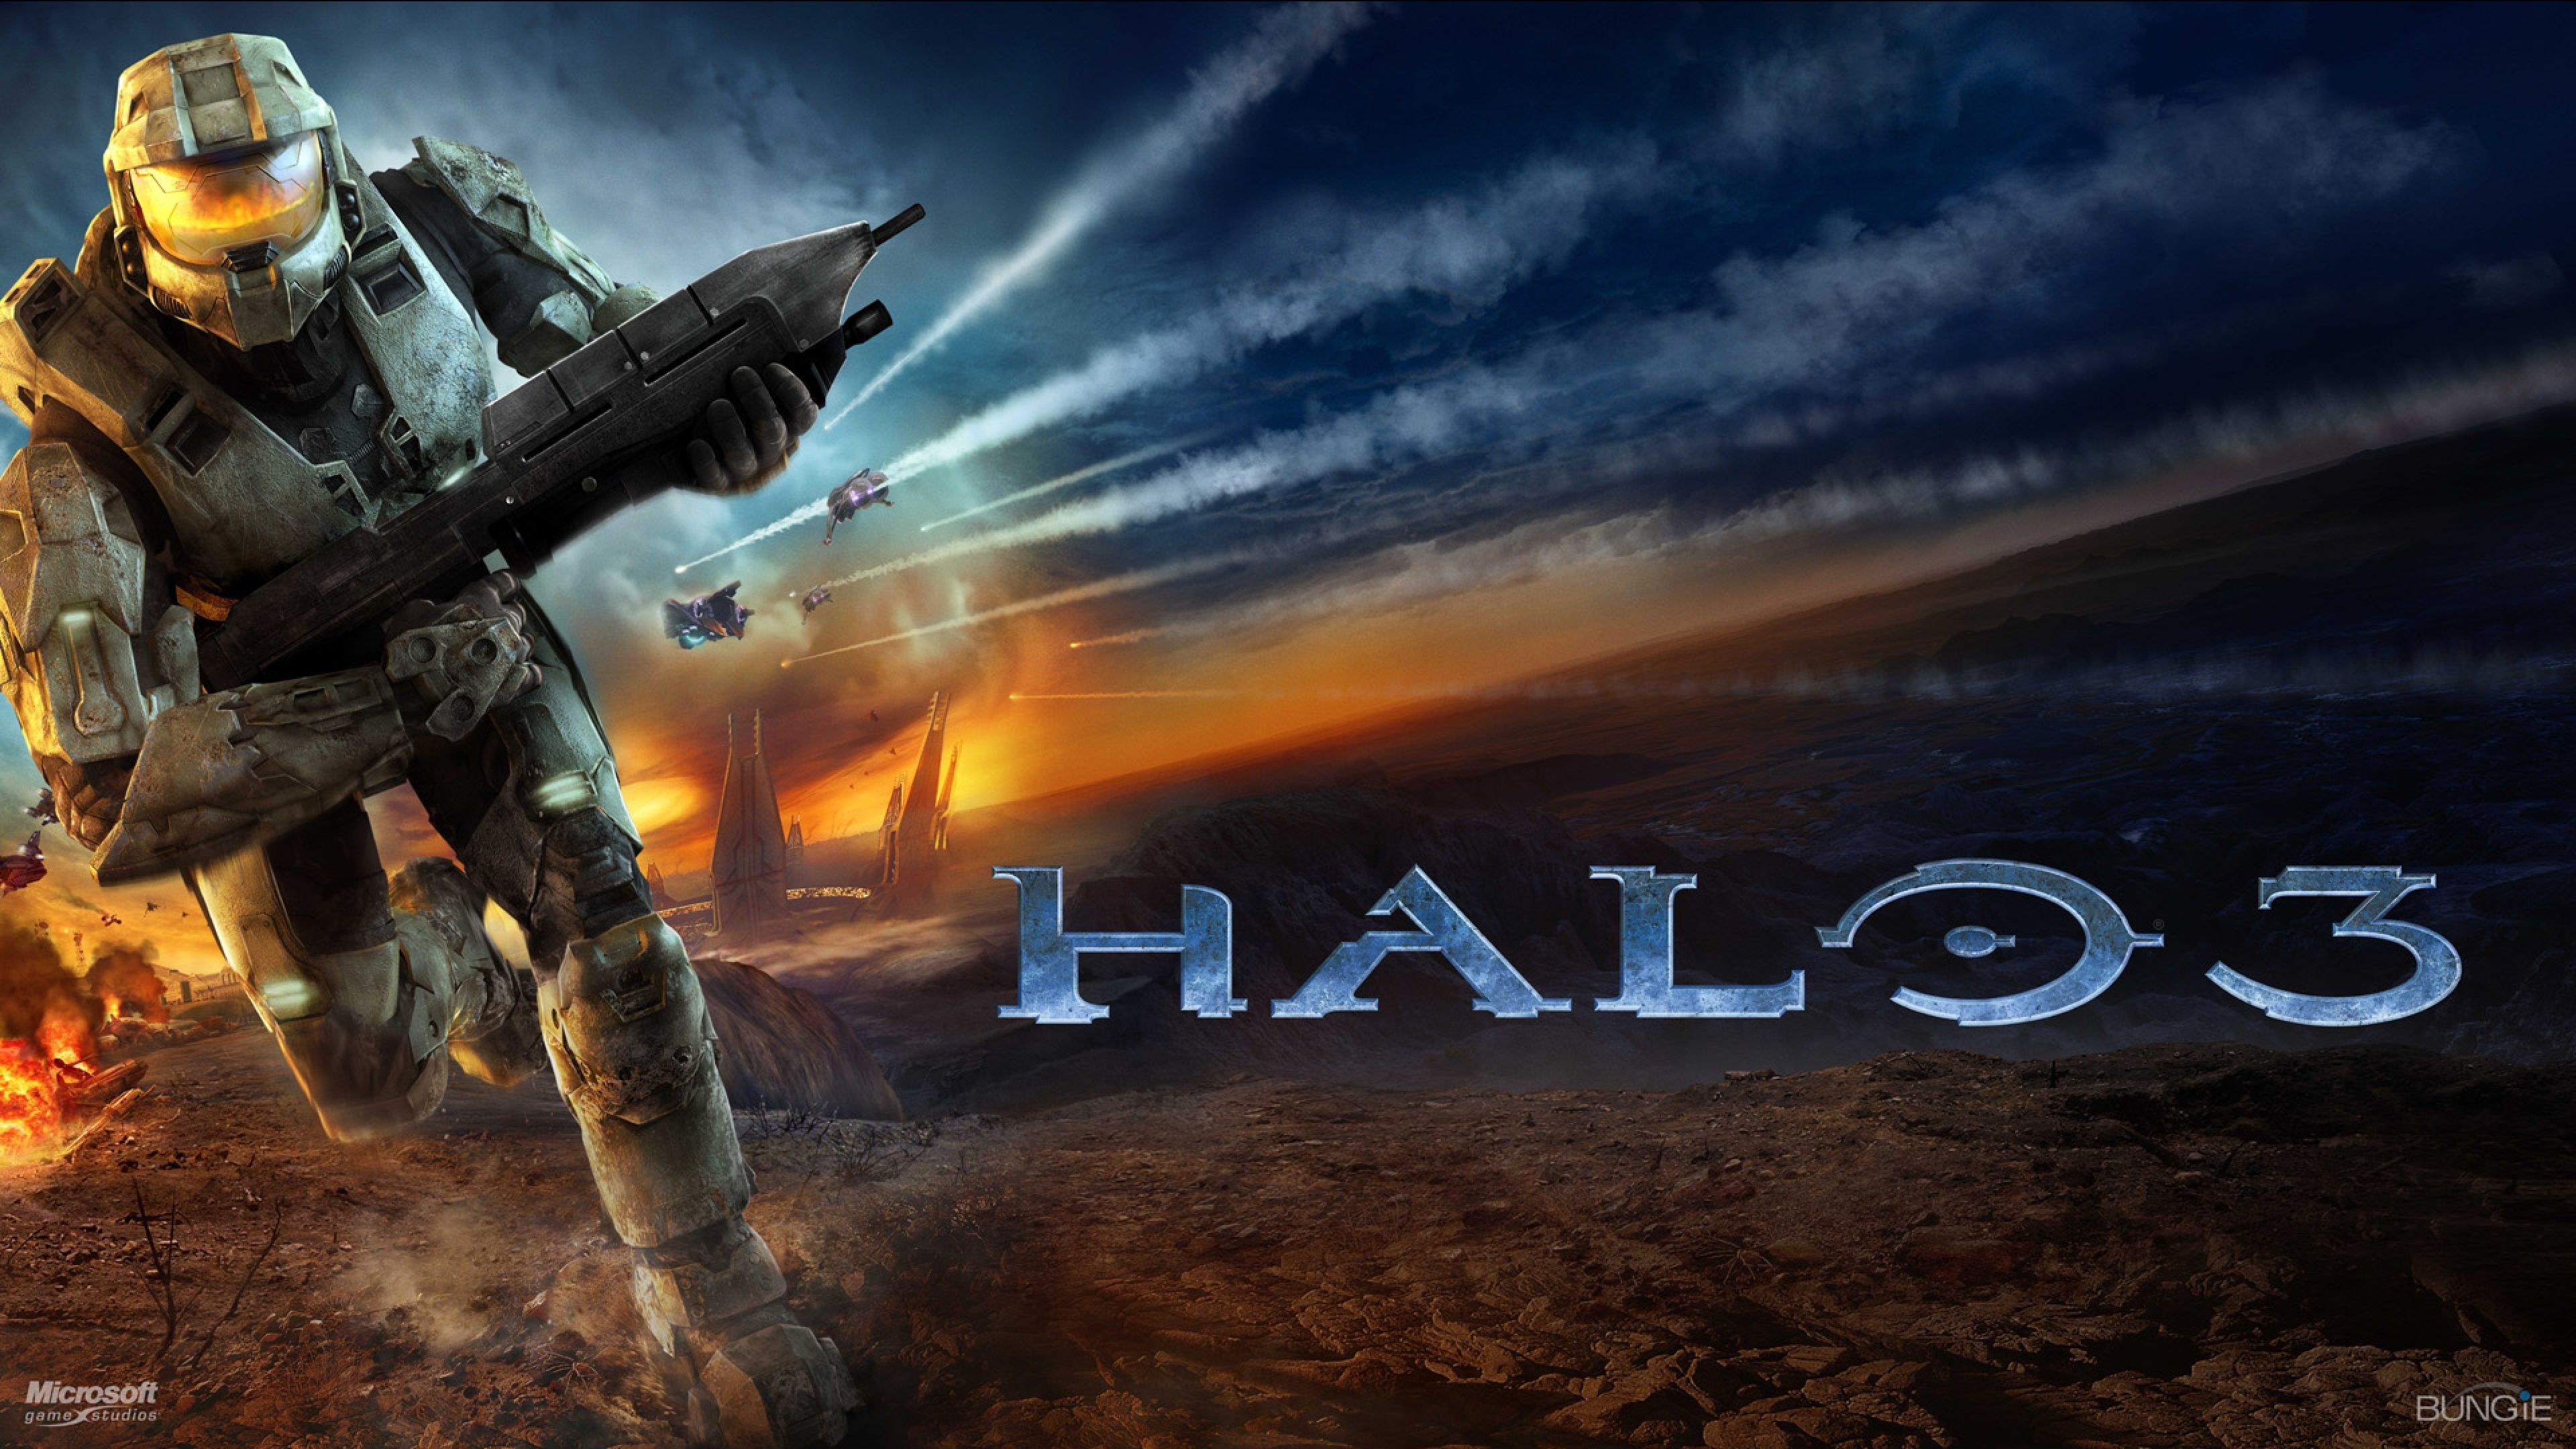 Free Download Halo 3 Soldier Run Sky Explosion Wallpaper